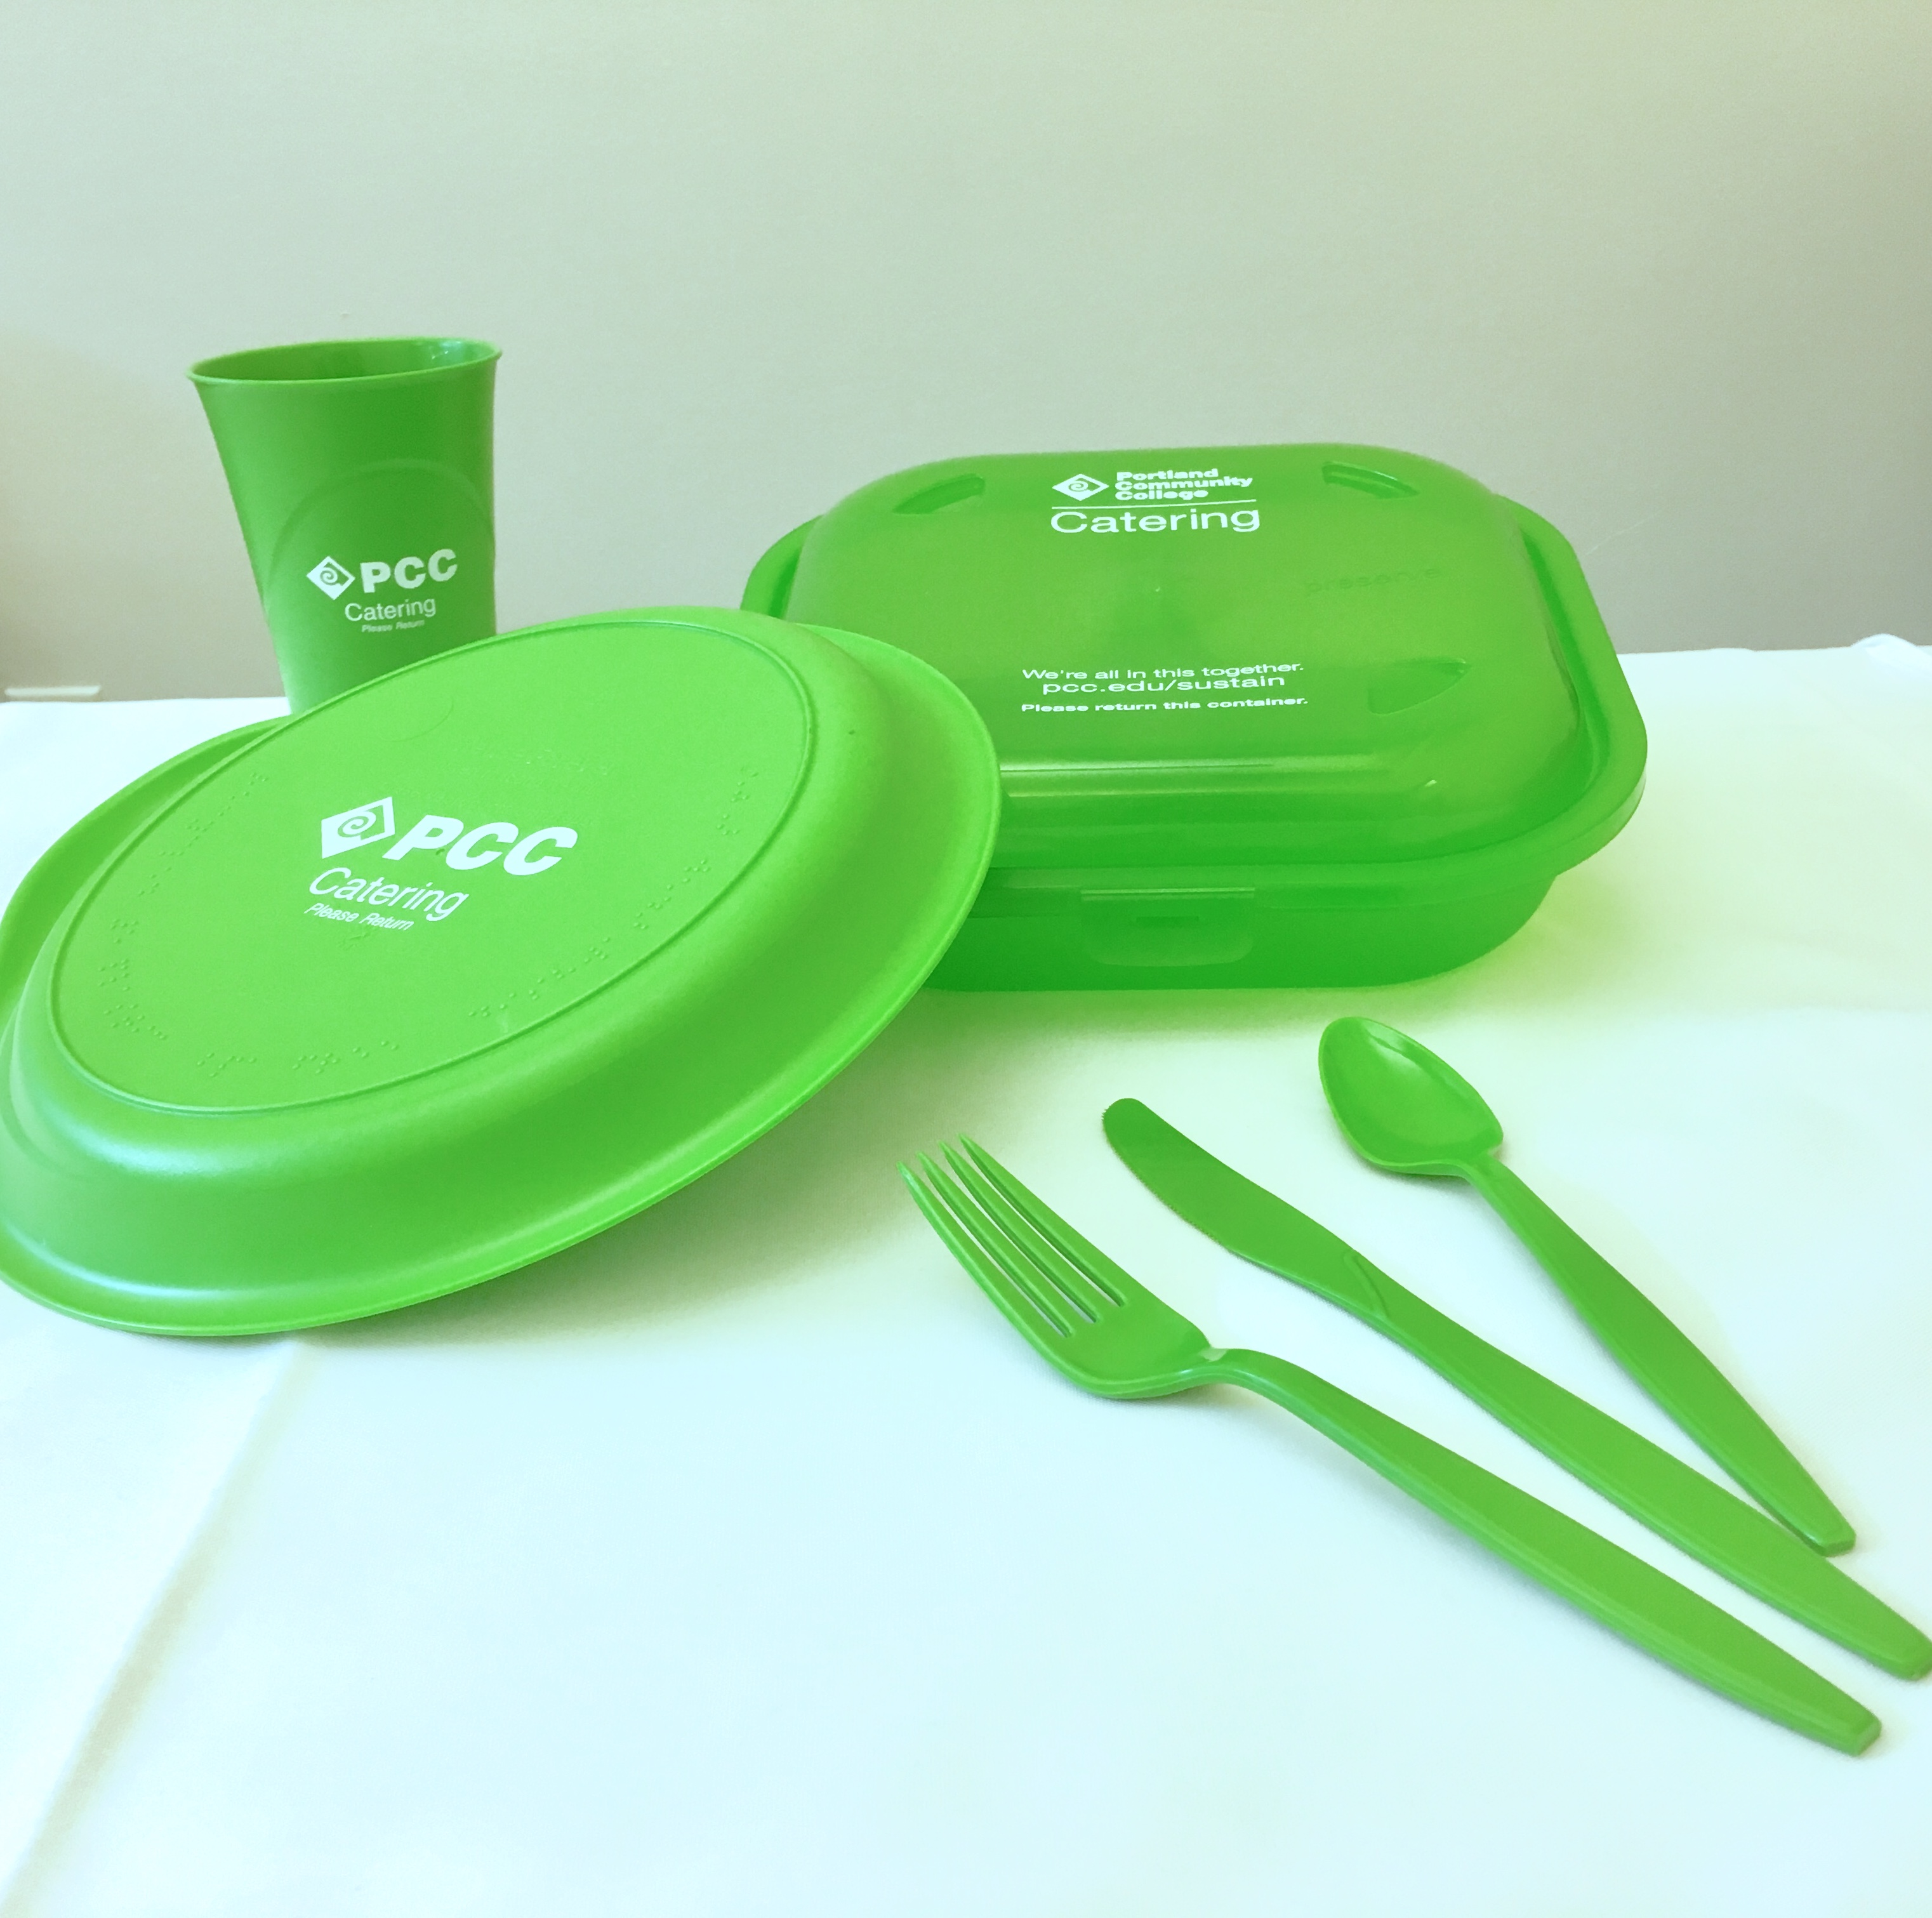 Durable recycled serviceware for catering at PCC